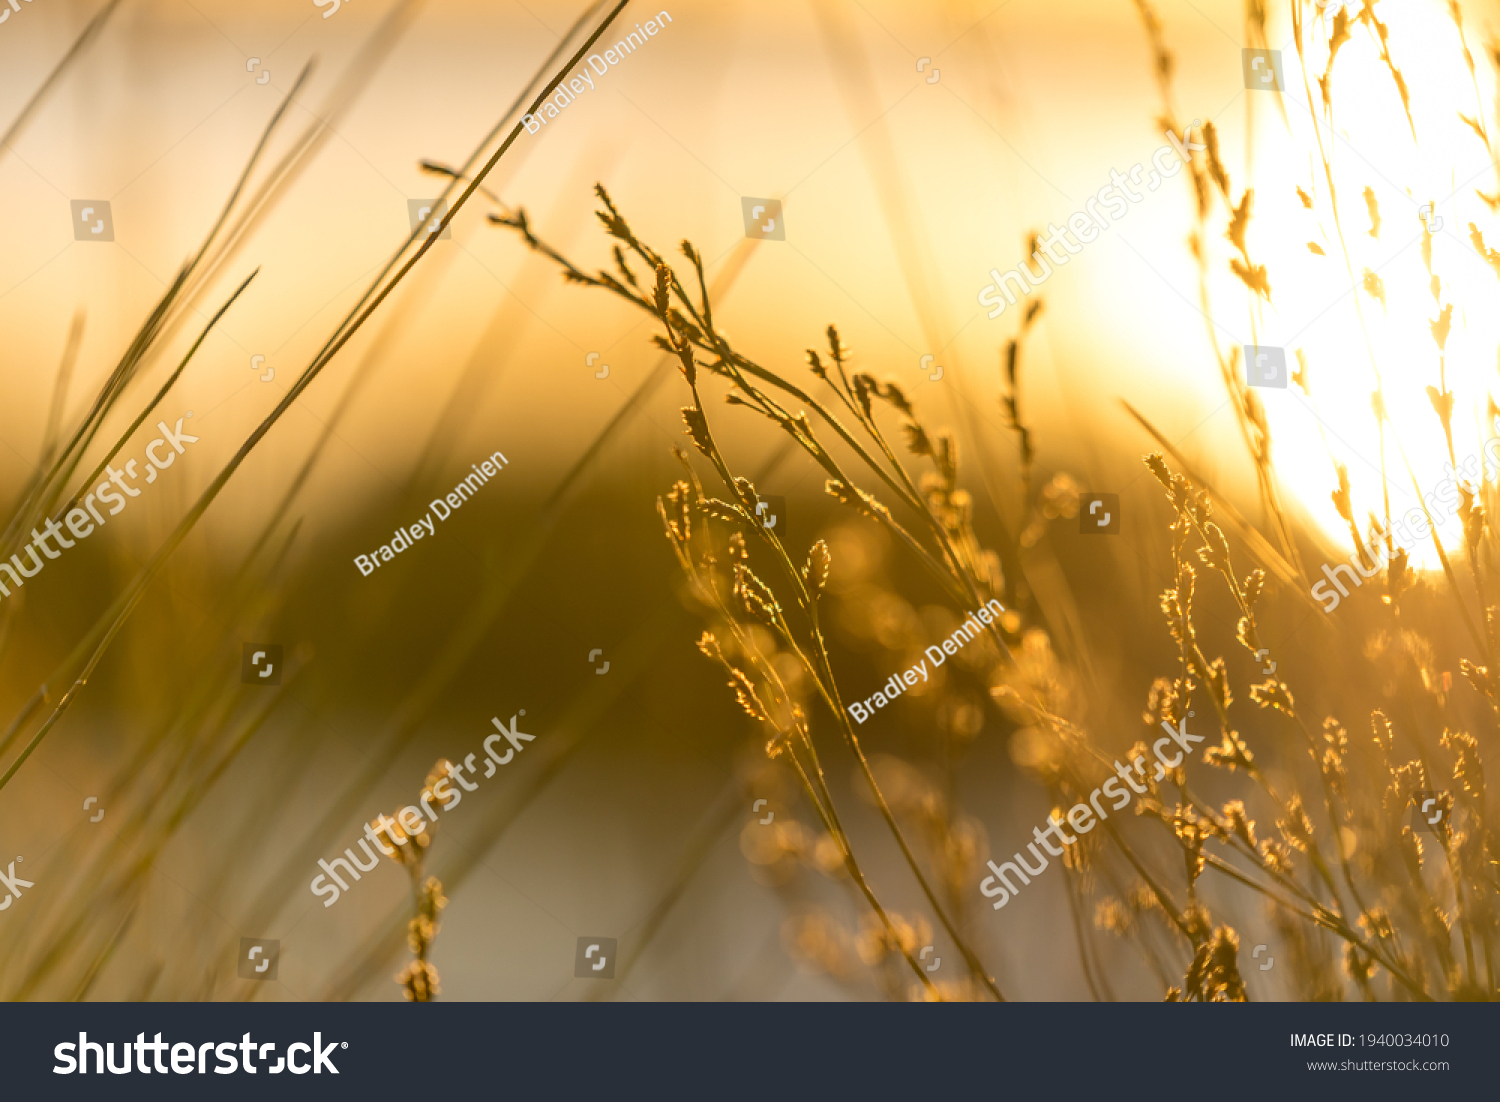 Serene and heavenly golden light cascading across reeds by a beautifully lit lake #1940034010